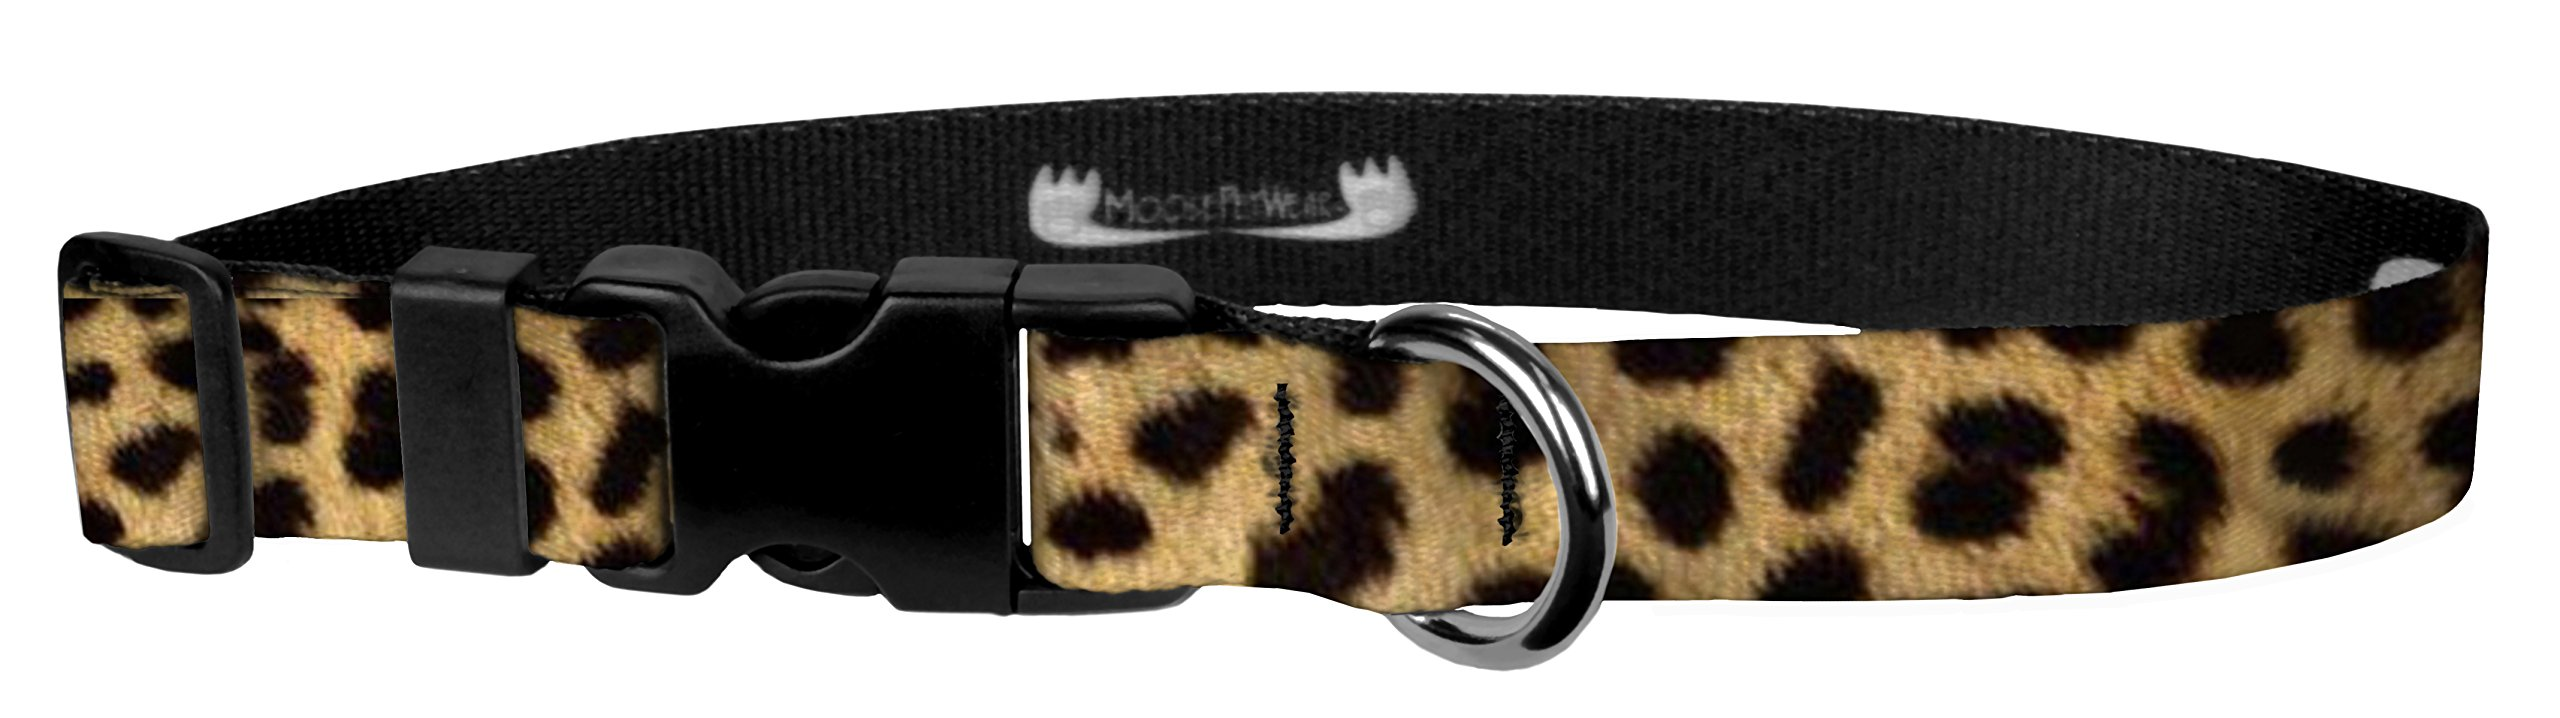 Moose Pet Wear Dog Collar - Patterned Adjustable Pet Collars, Made in the USA - 3/4 Inch Wide, Small, Leopard